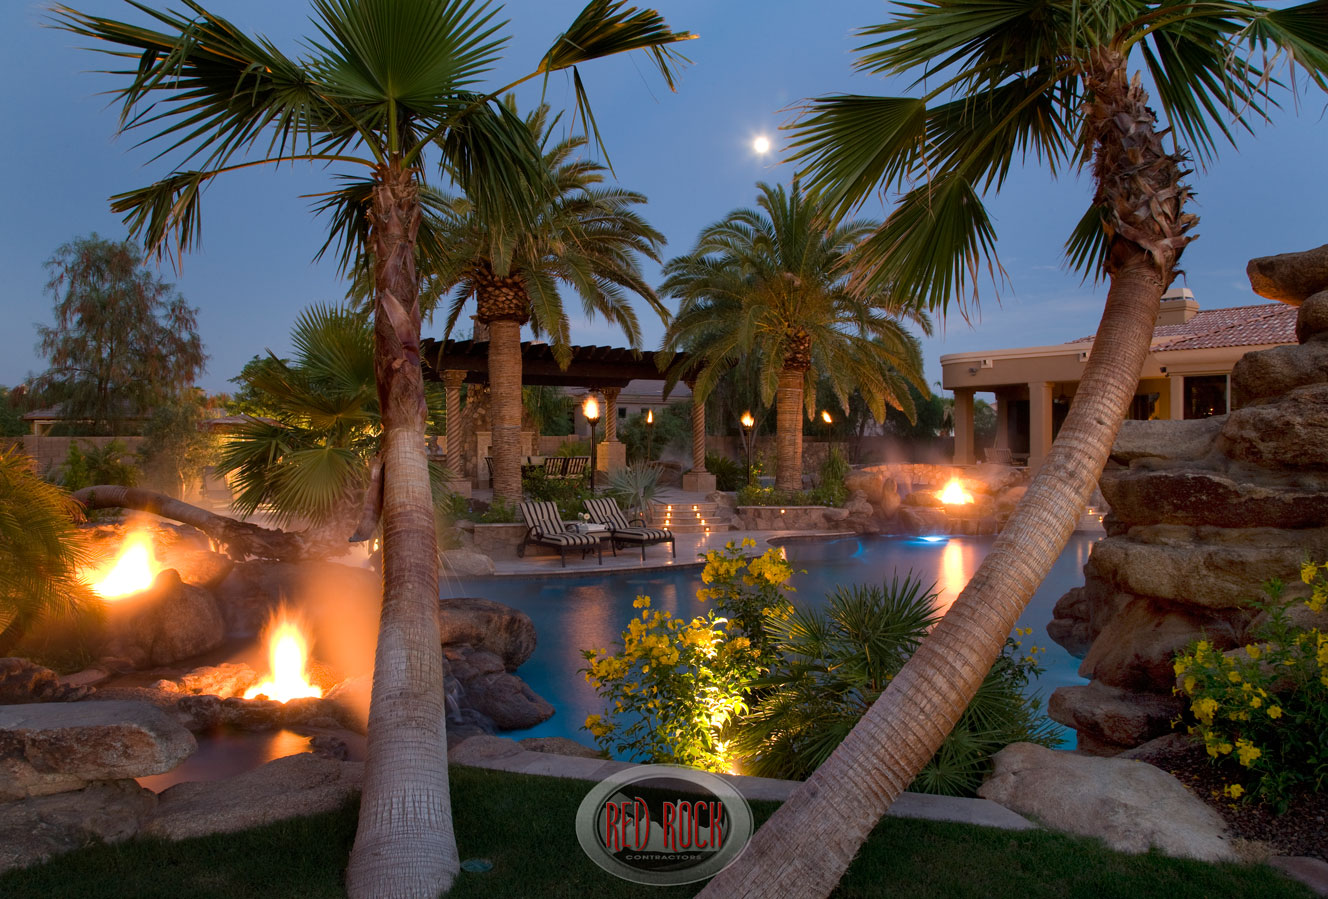 red rock pools & spas, red rock contractors, red rock design, gilbert architecture, gilbert design, custom pool, ramada, fire features, misting system, fog system, outdoor kitchen, fireplace